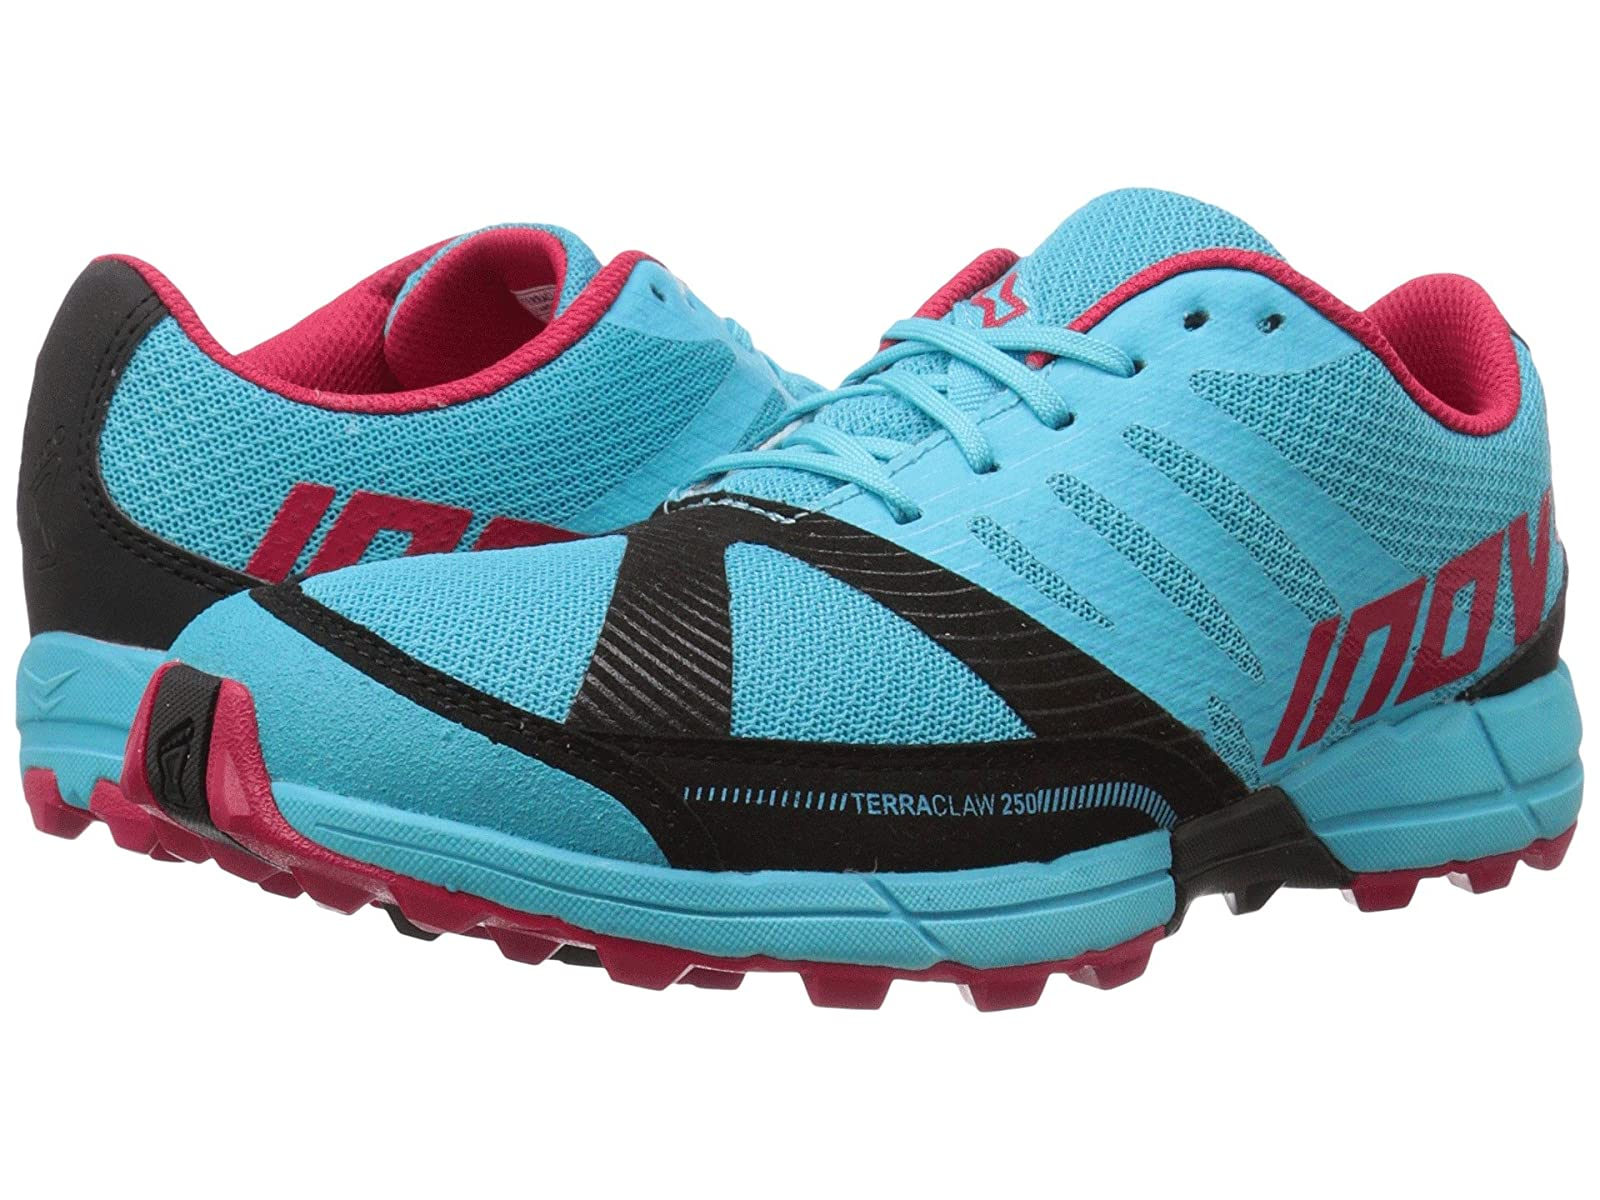 inov-8 Terraclaw™ 250Cheap and distinctive eye-catching shoes